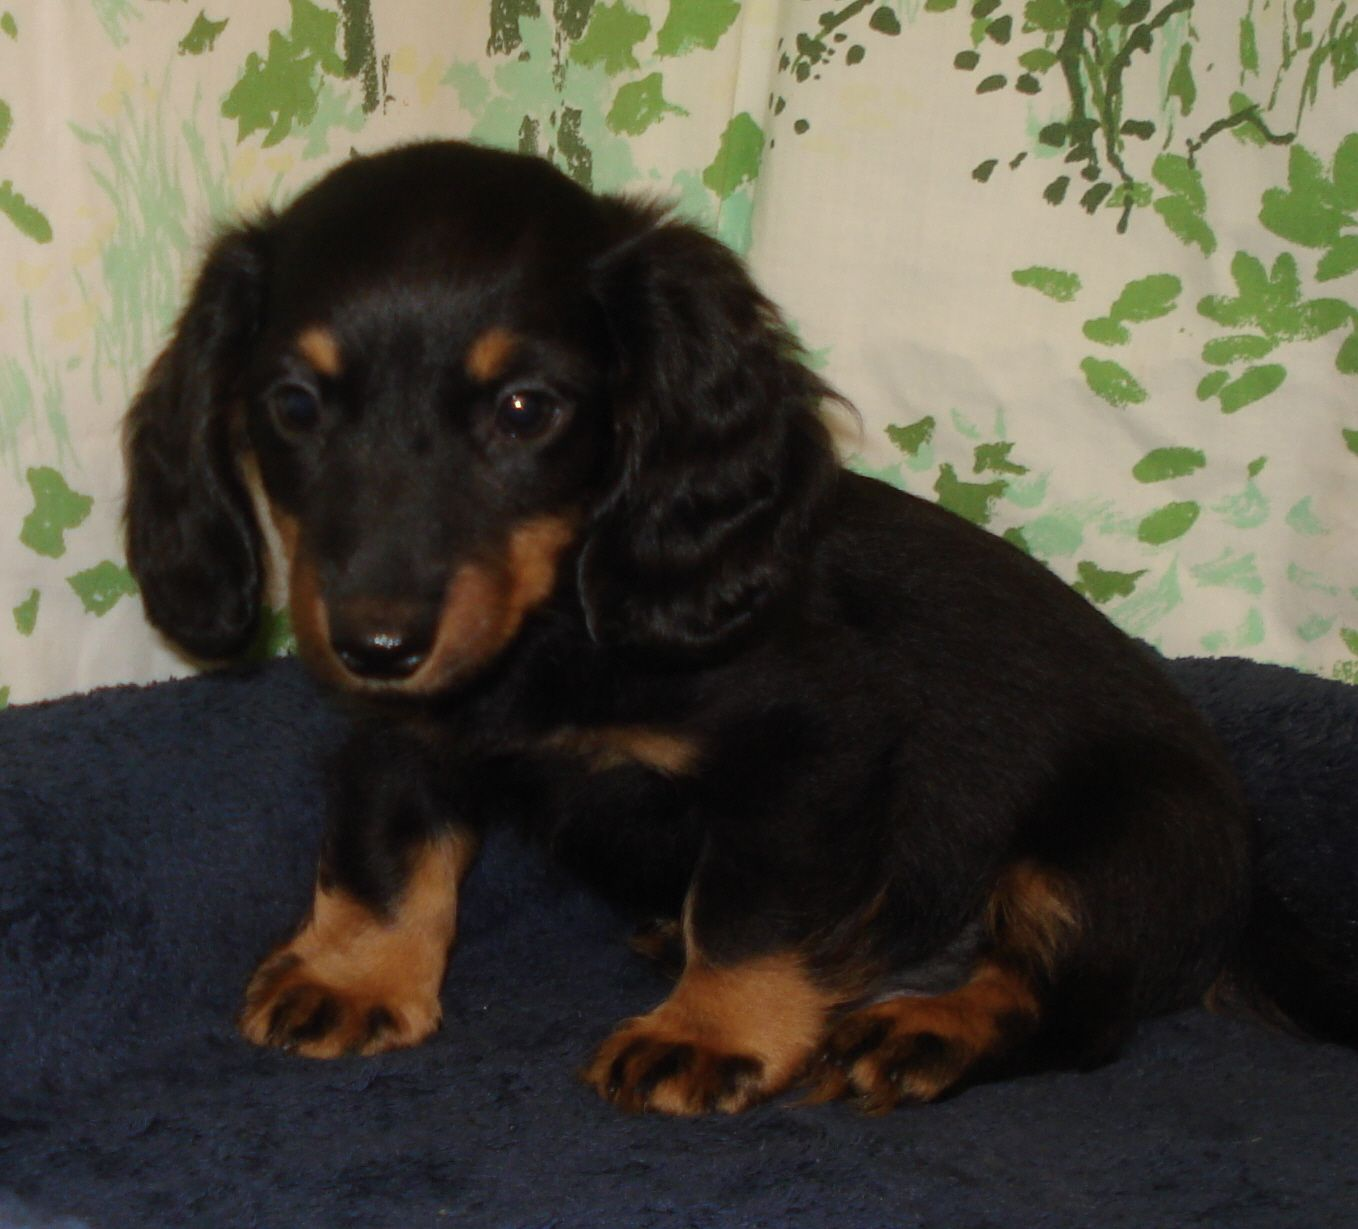 Lost Dog Mound Dachshund Long Haired Chihuahua Mix Male Date Lost 07 07 2019 Dog S Name Beans Breed Of Dog Dachshund Long Hair Losing A Dog Dog Ages Dogs